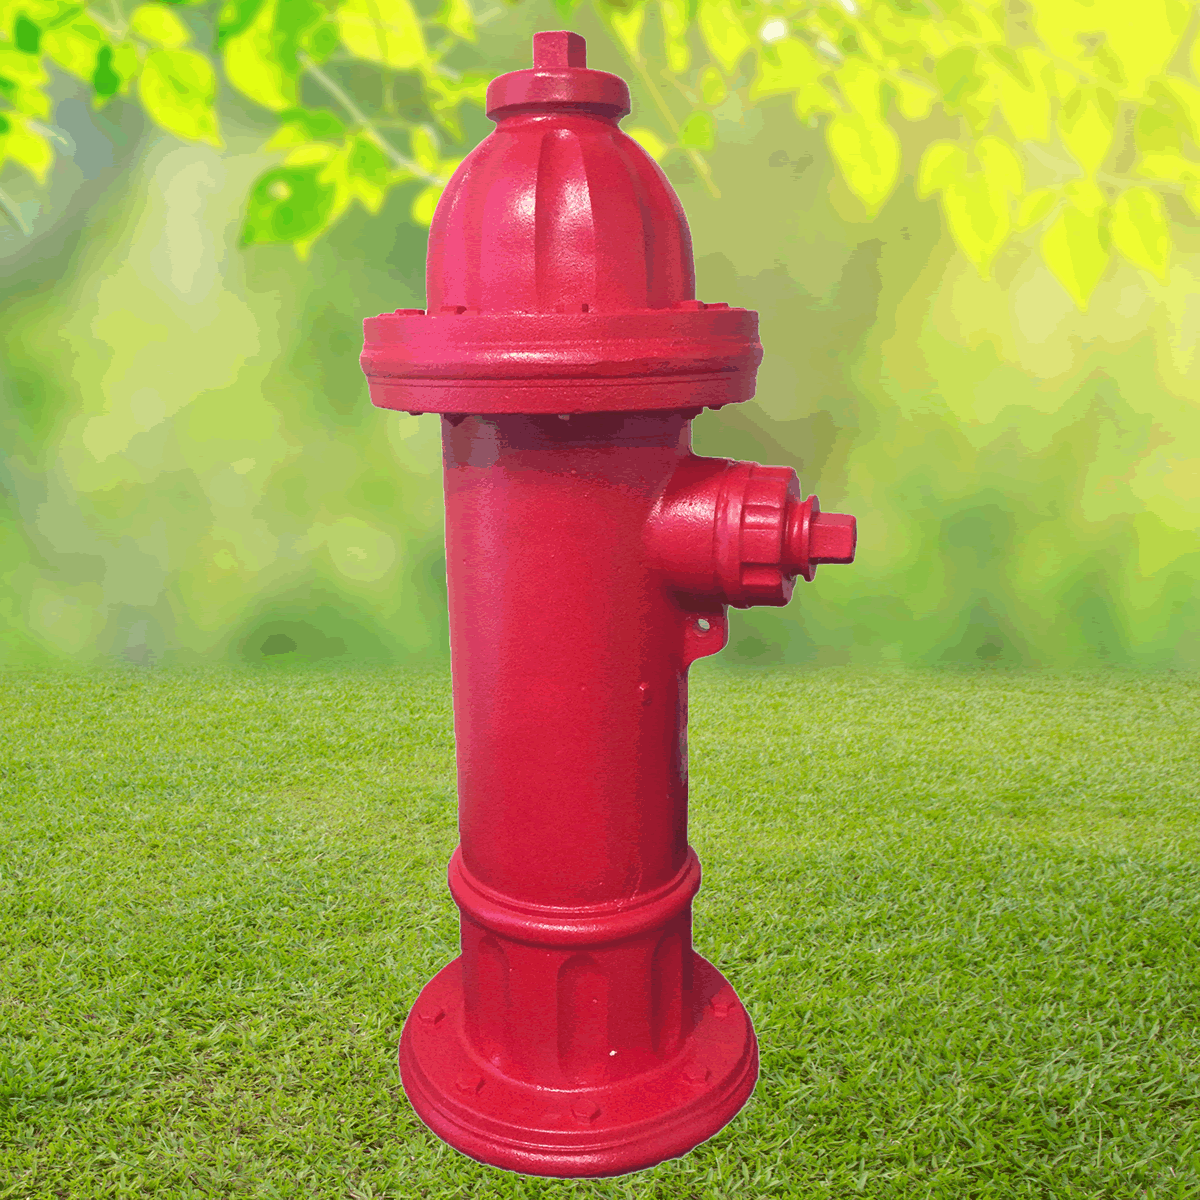 Playgrounds For Dogs Decorative Fire Hydrant